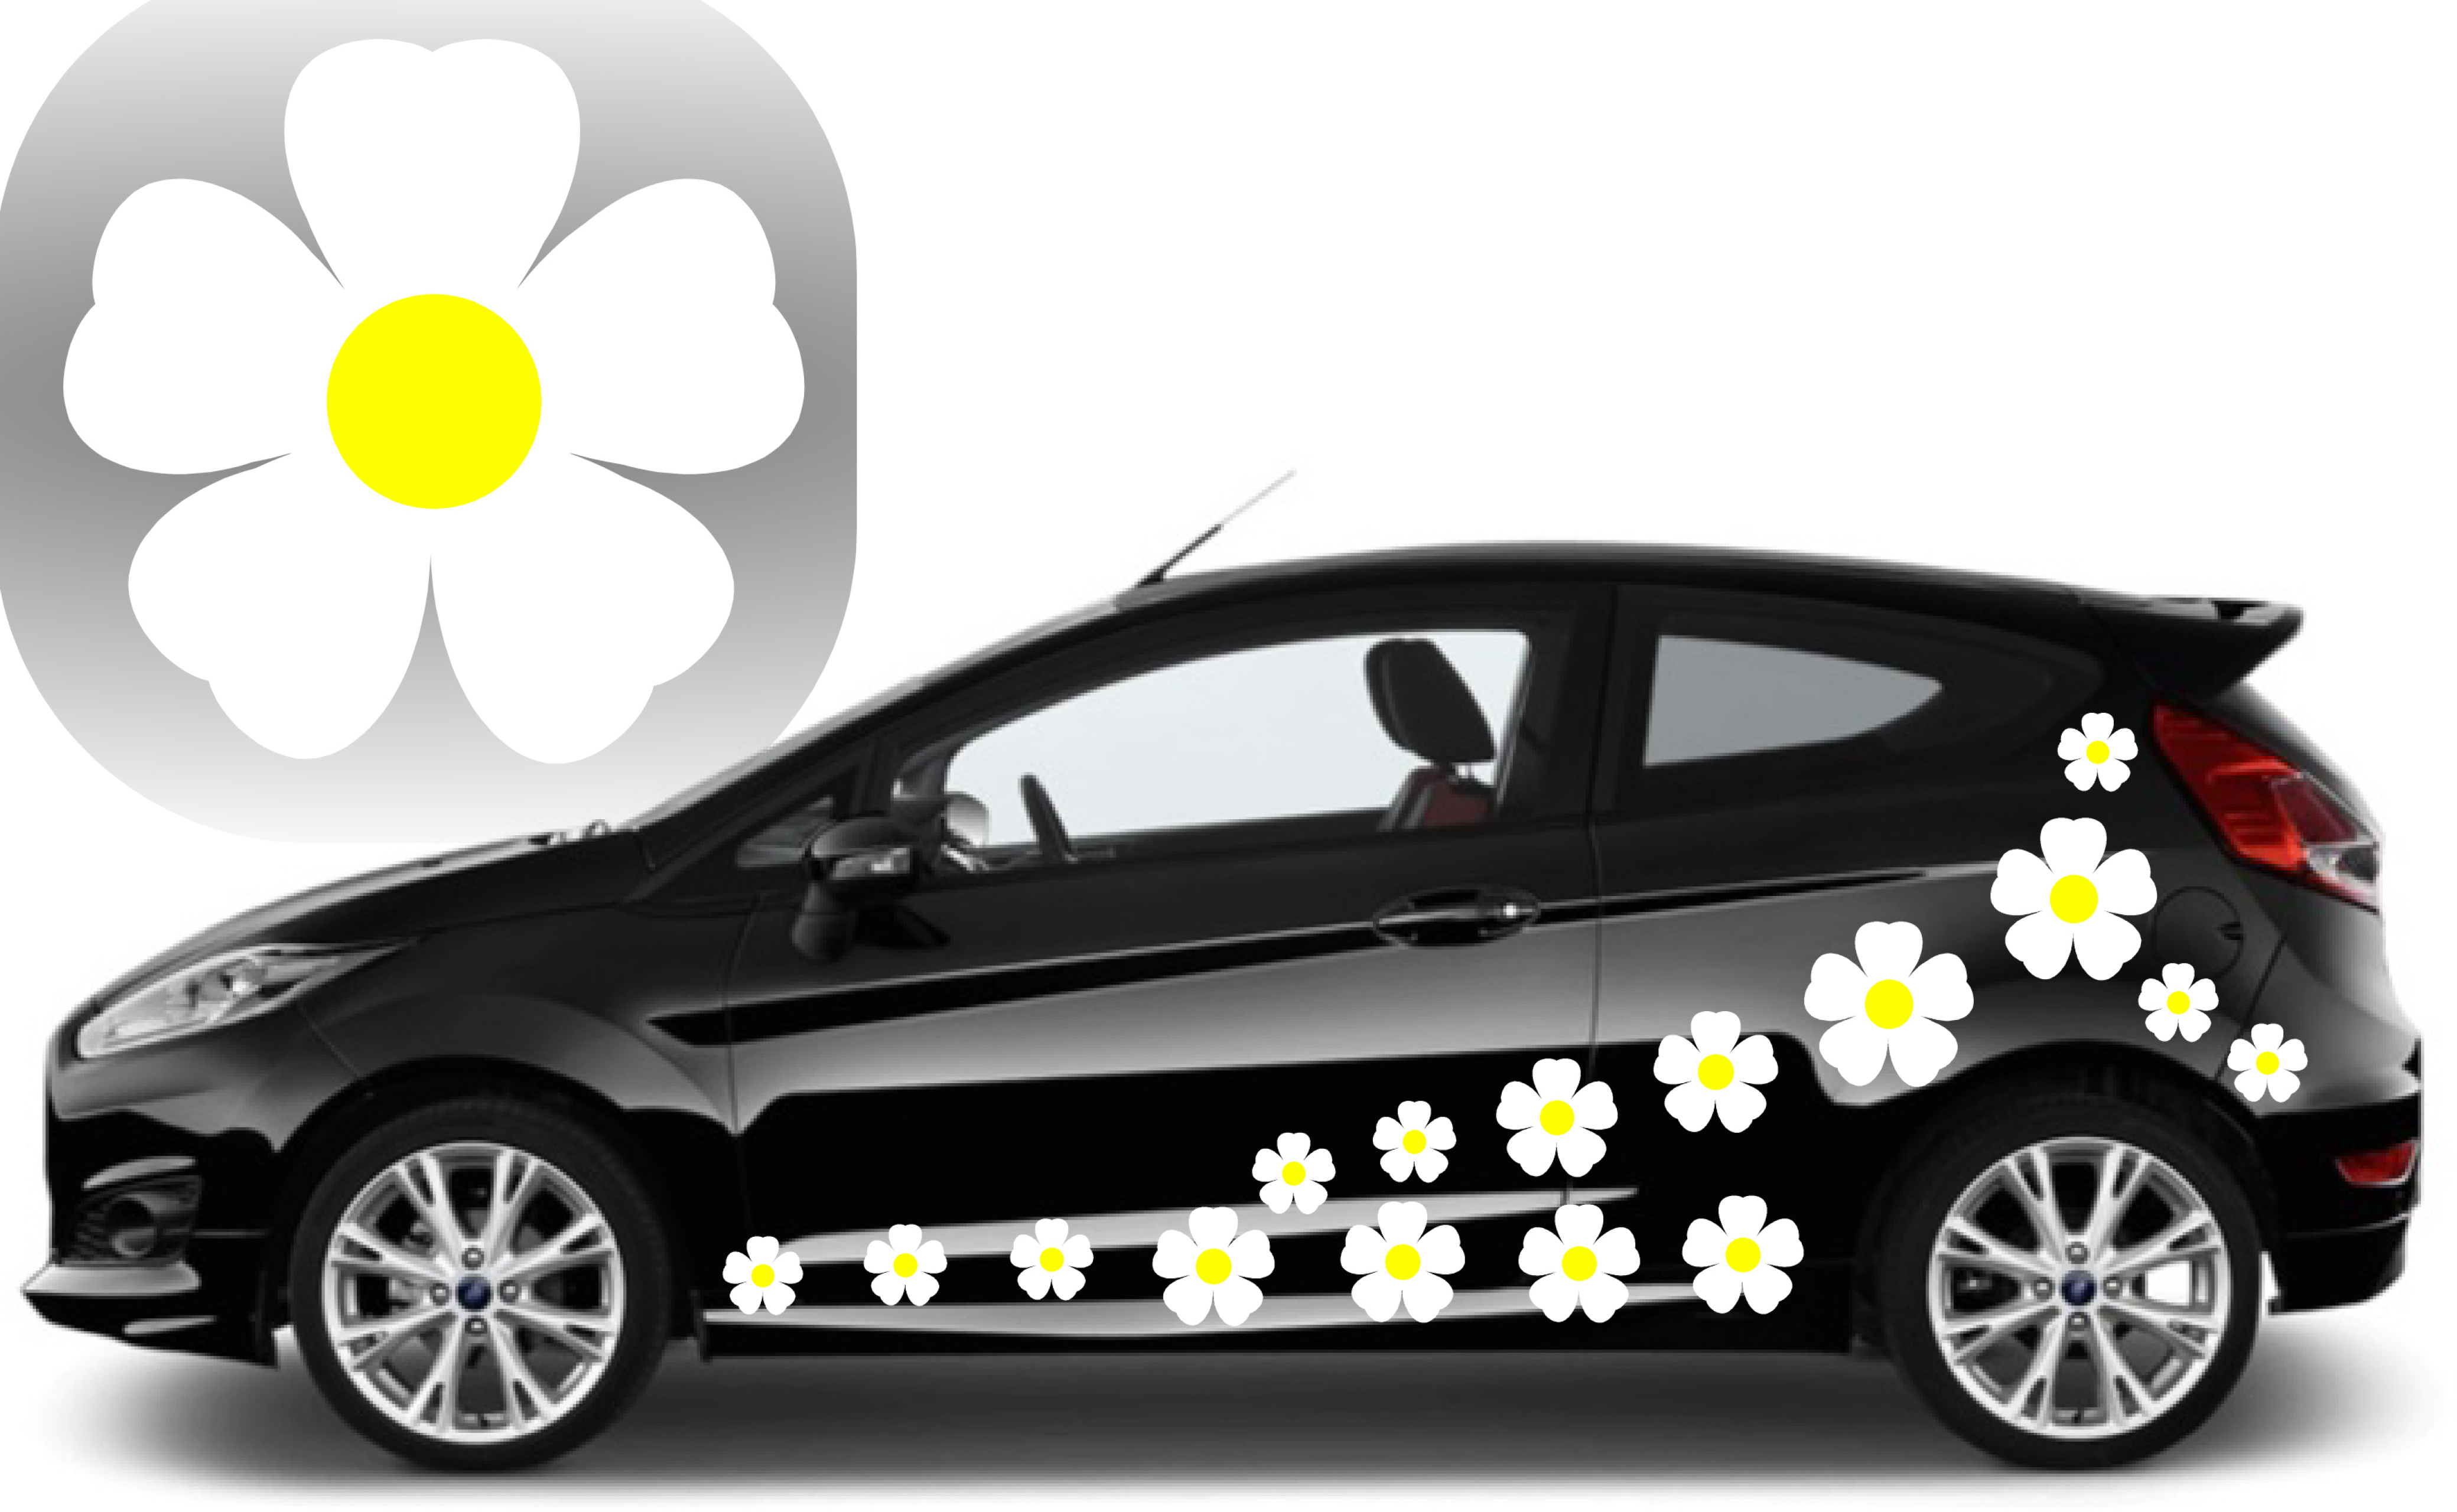 32 white flower graphic car decal stickers